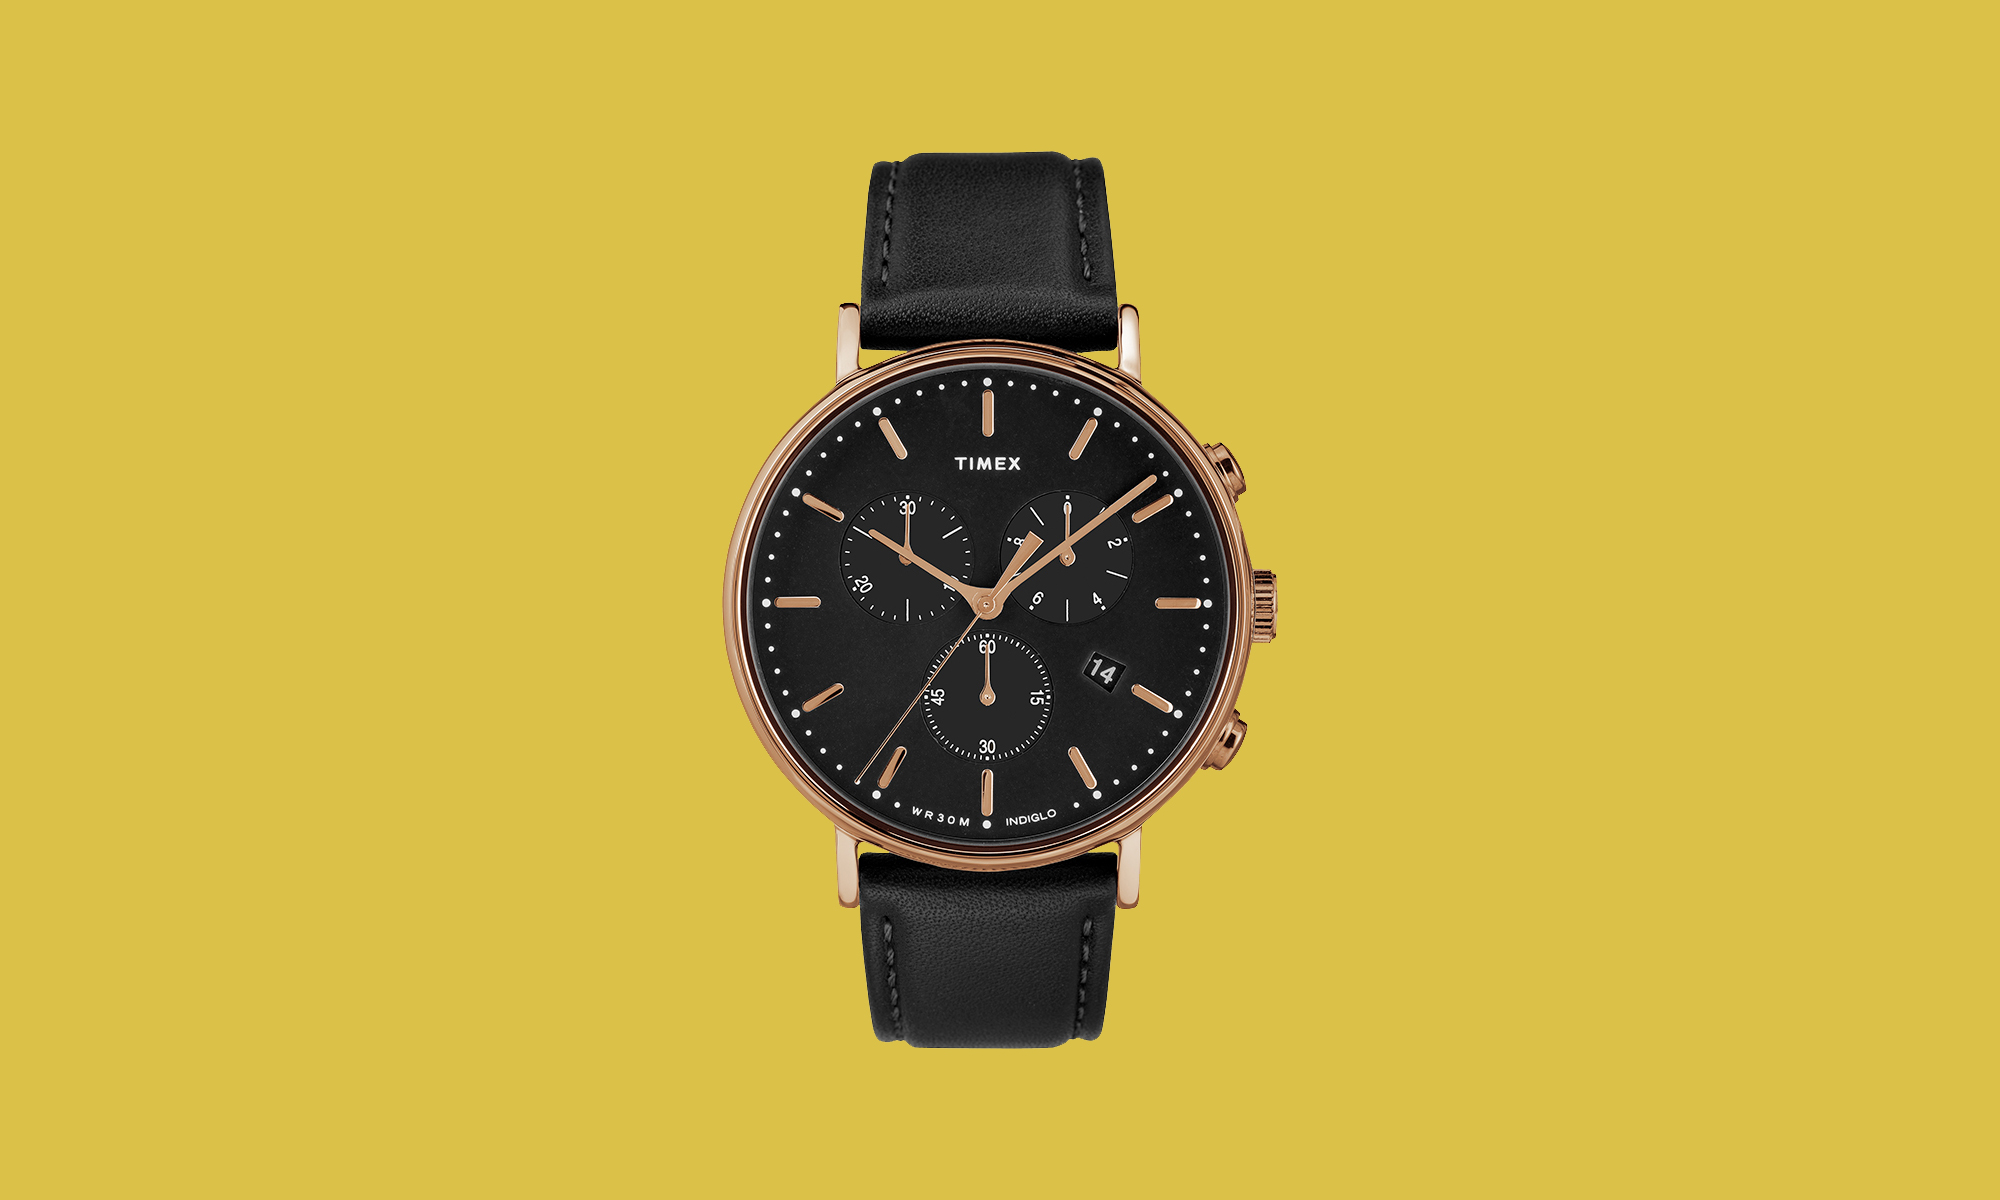 Timex Rose-Gold-Tone/Black Watch Leather Strap